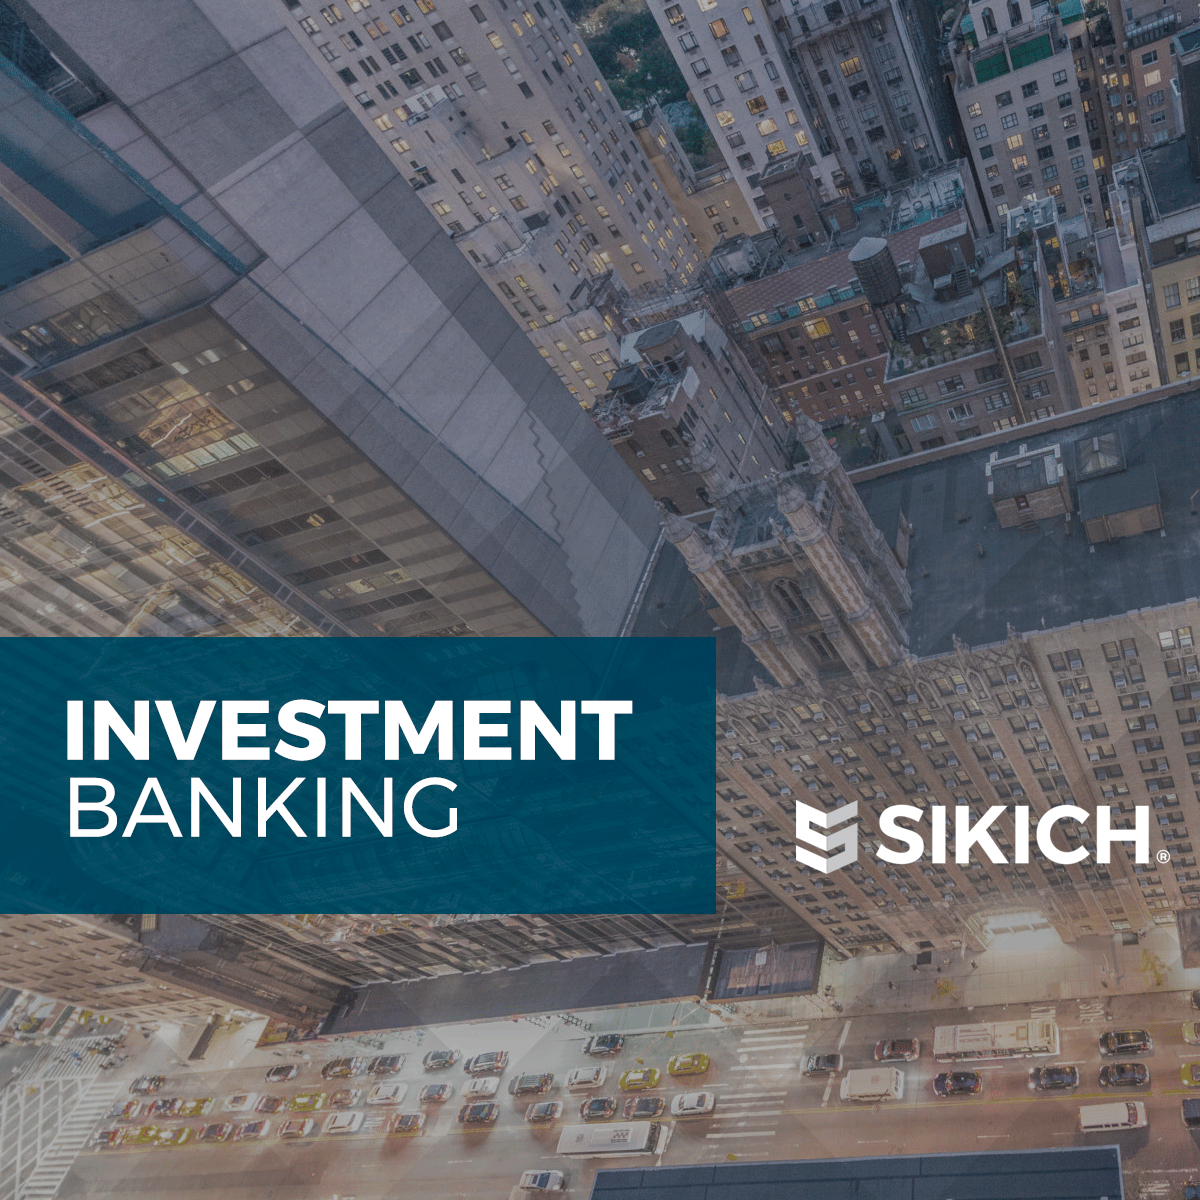 Sikich investment banking